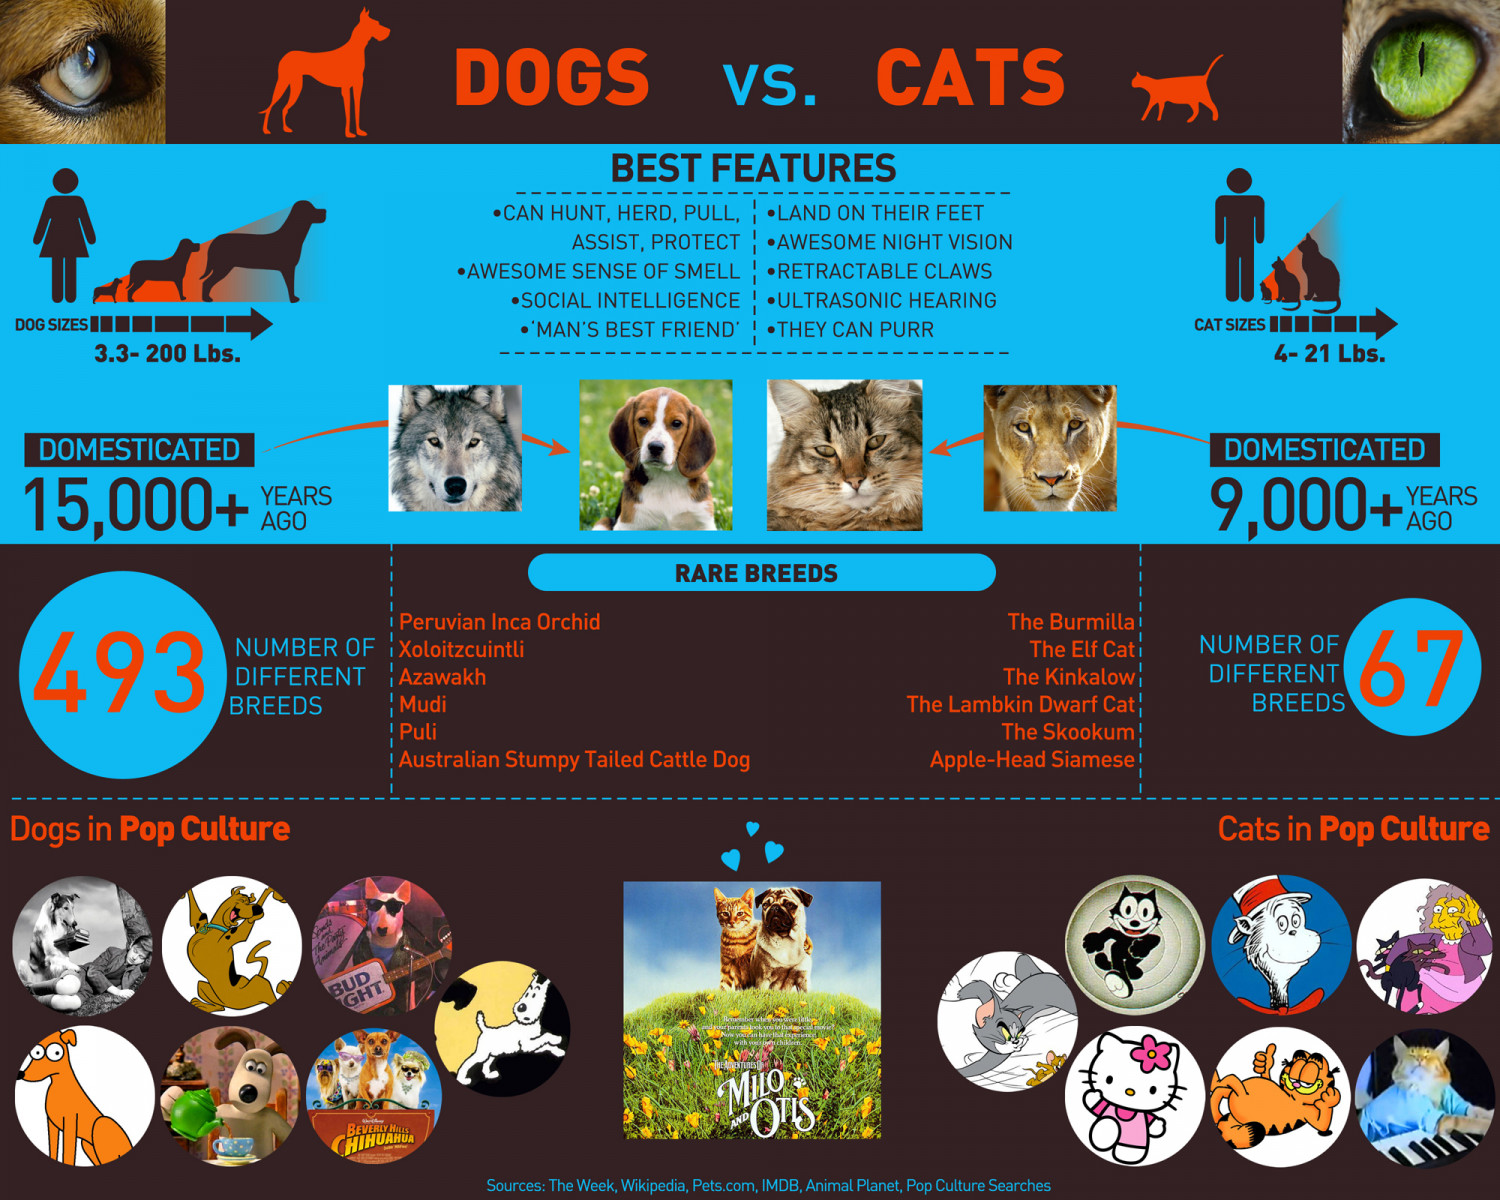 Dogs Vs. Cats Infographic